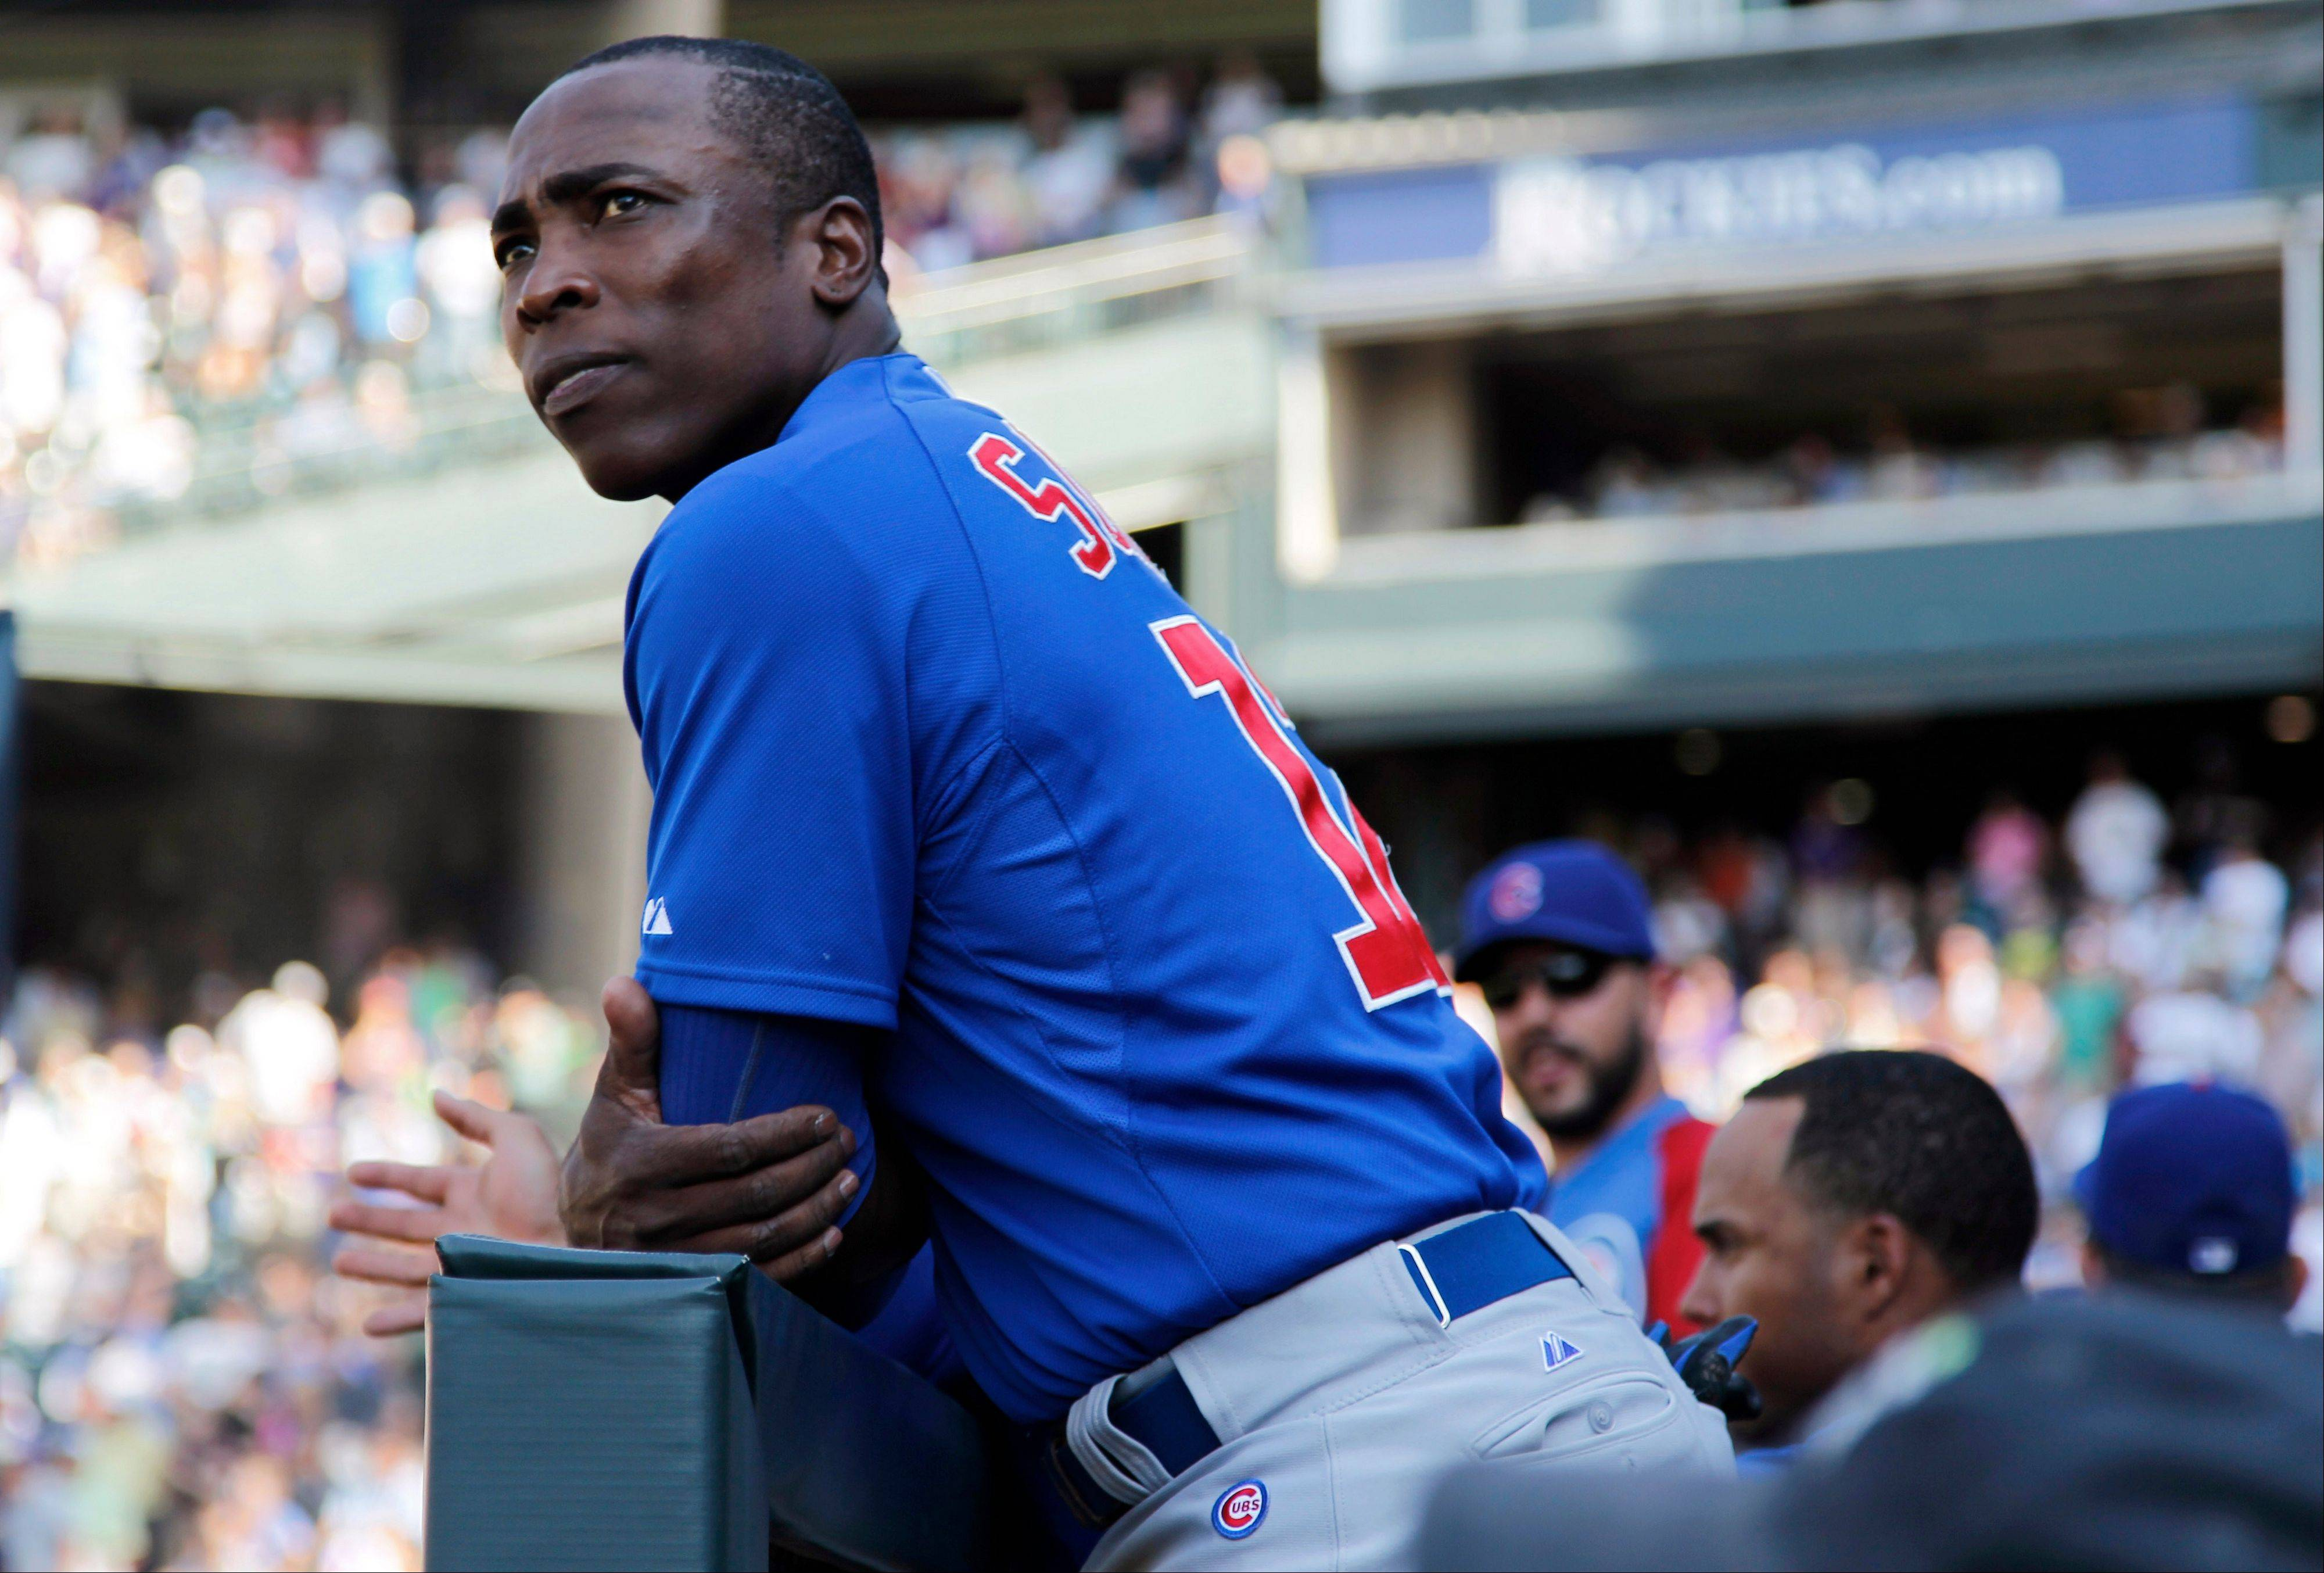 Chicago Cubs left fielder Alfonso Soriano leans against the front of the dugout as the Cubs were down to their final out against the Colorado Rockies in a baseball game in Denver on Sunday, July 21, 2013. The Rockies won 4-3.